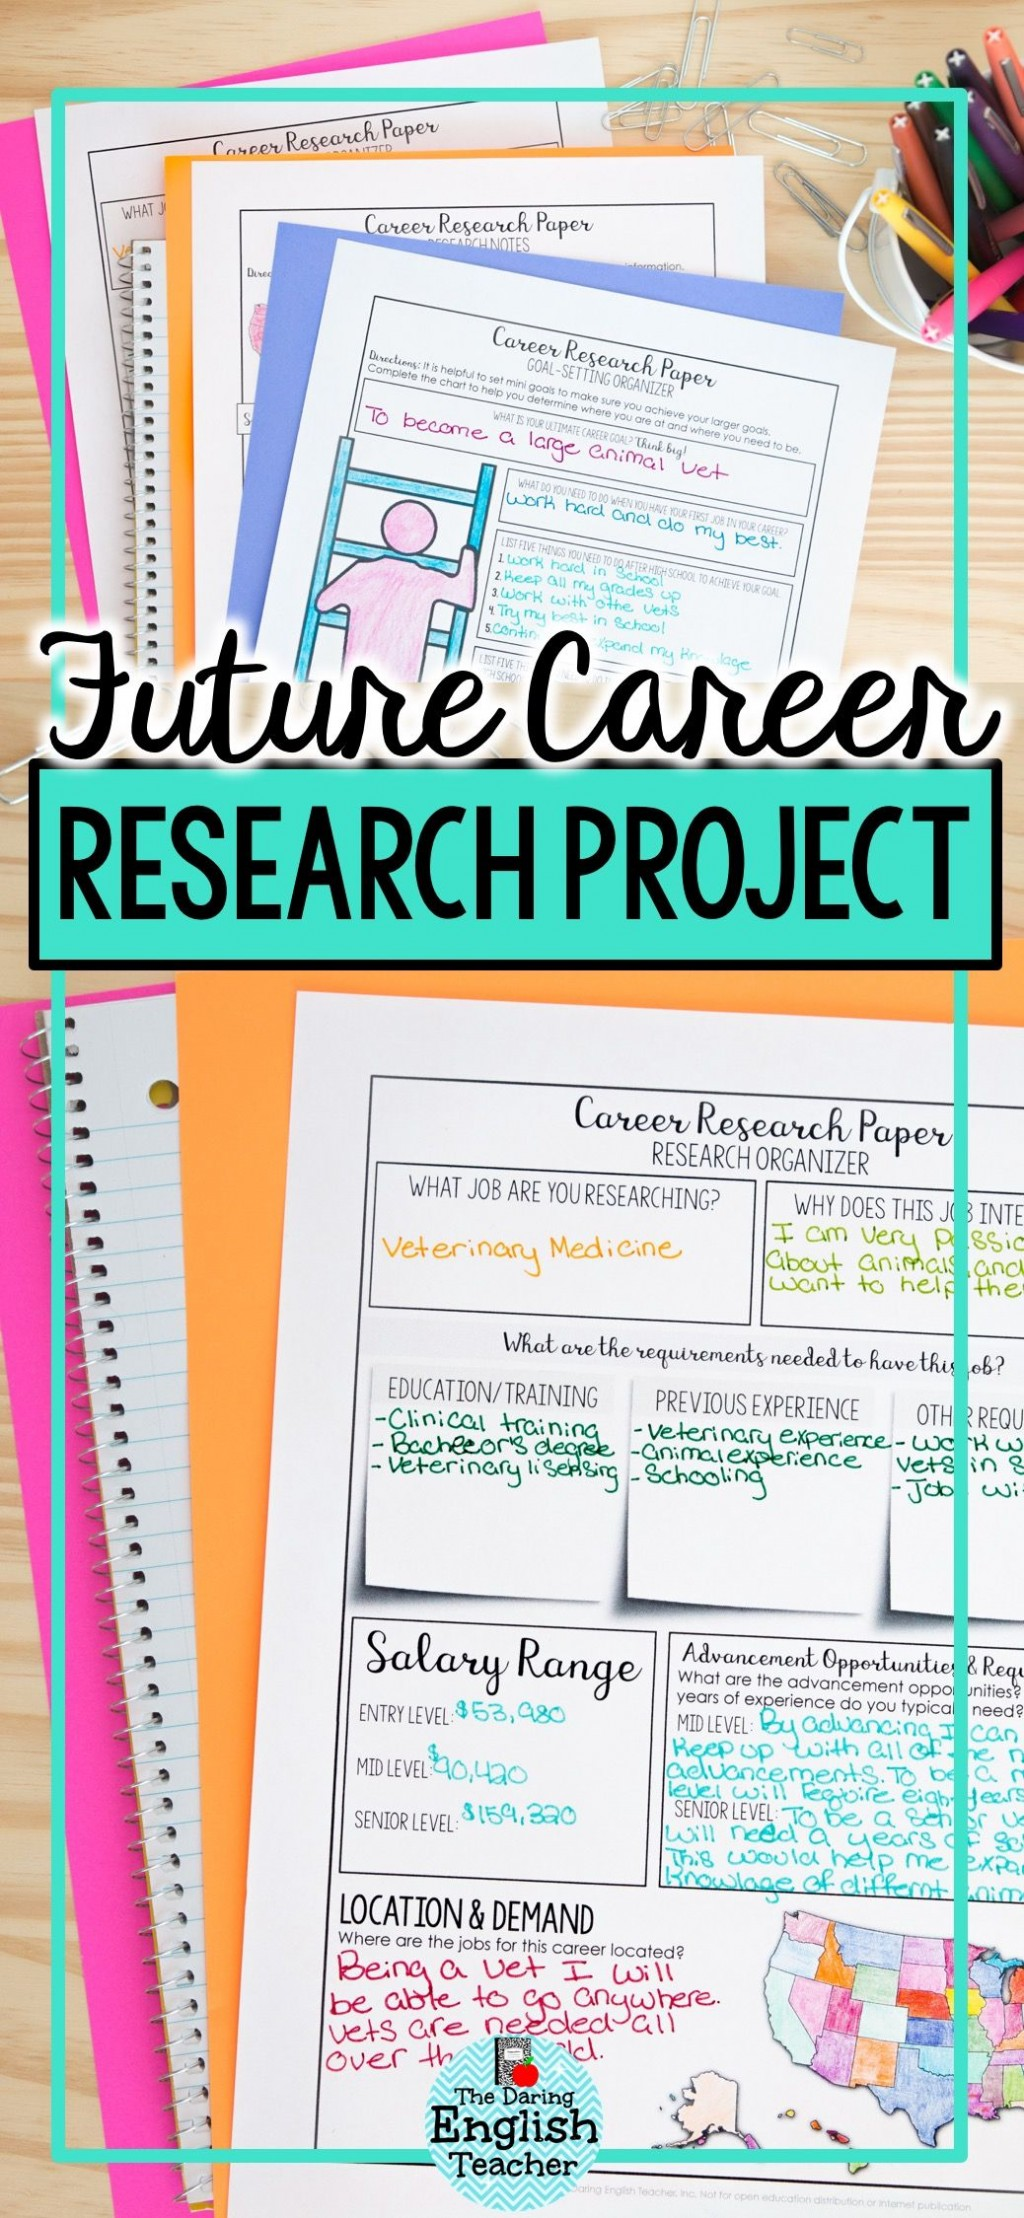 005 Career Research Paper Wondrous Rubric Large